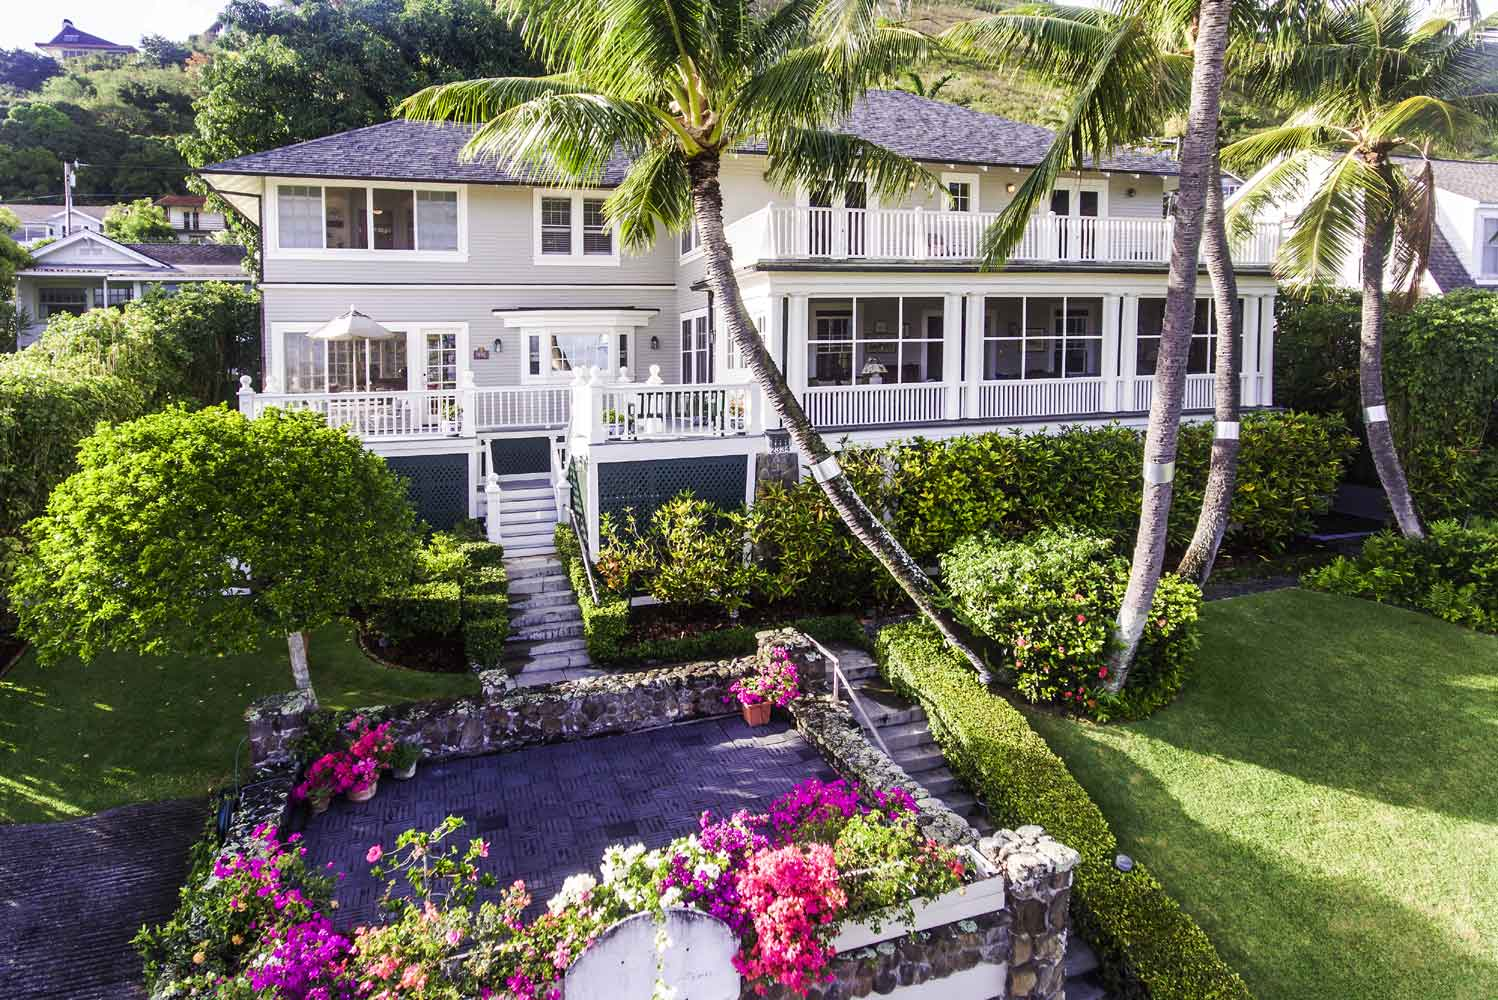 With breathtaking views of Diamond Head and the Pacific Ocean, this six-bedroom, 4,304-square-foot Colonial Revival Craftsman house in Manoa will entertain residents and their guests in grand Hawaiian style.